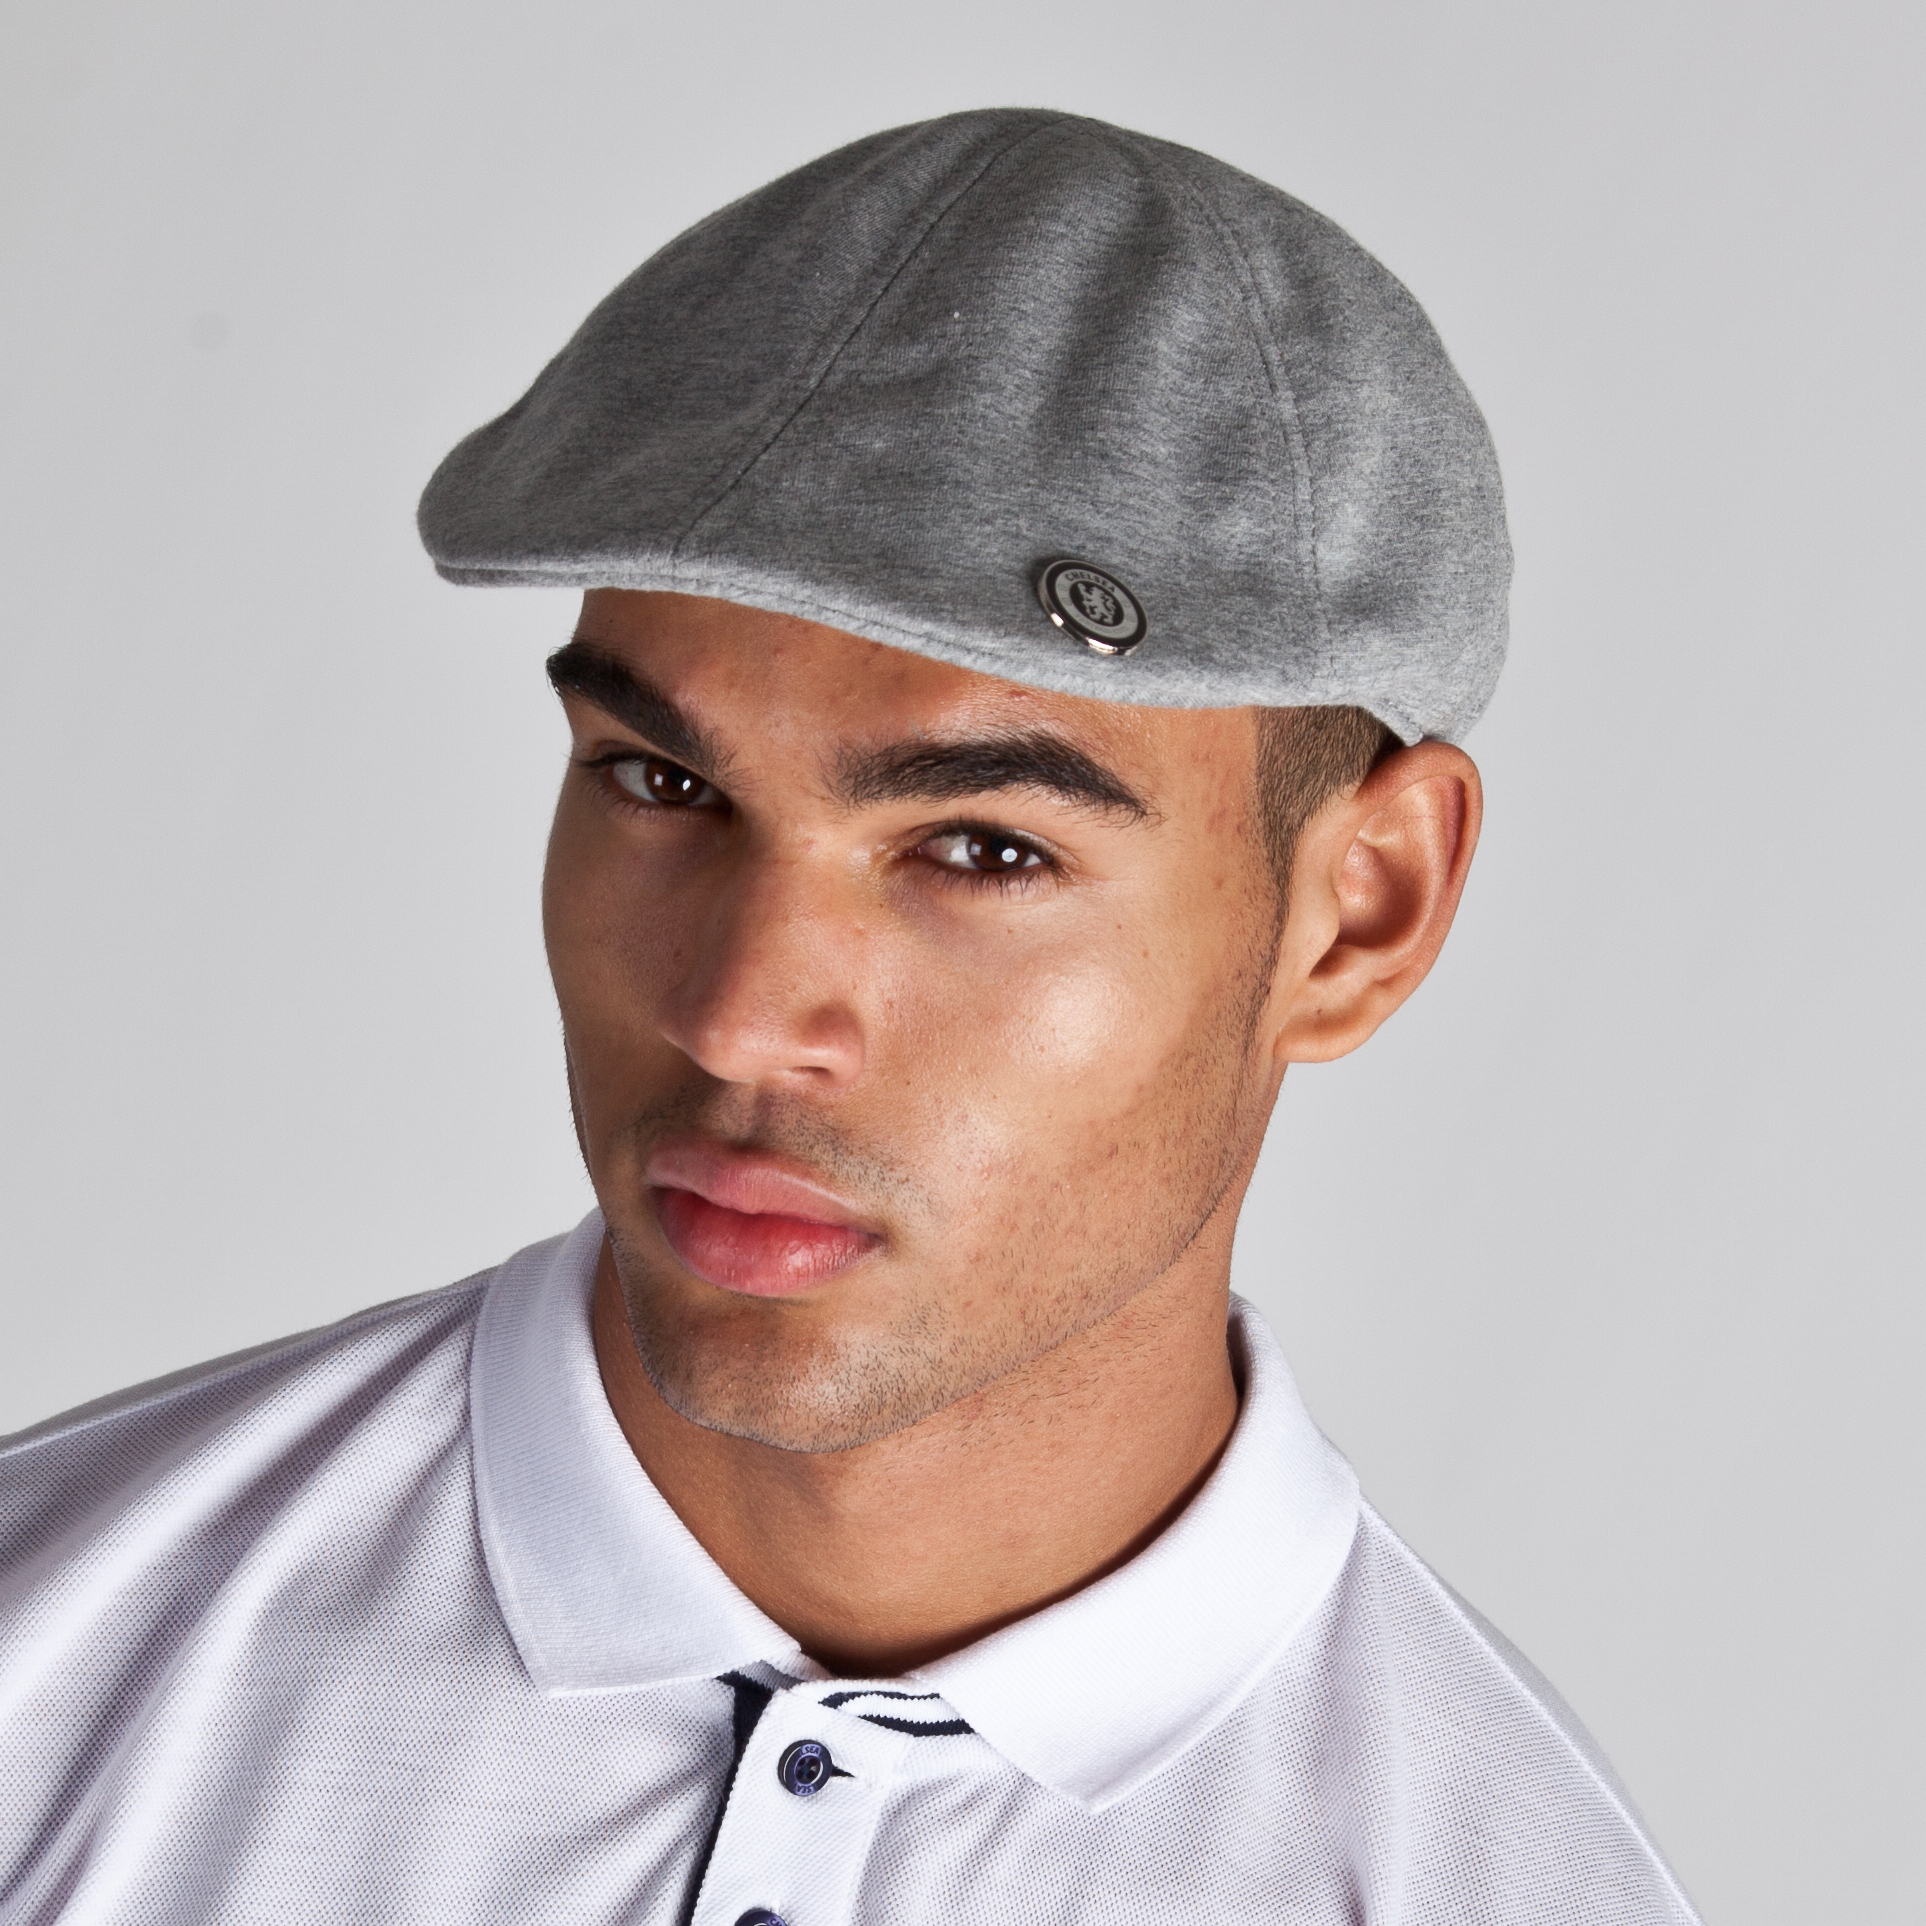 Chelsea Flat Cap - Grey Marl - Mens